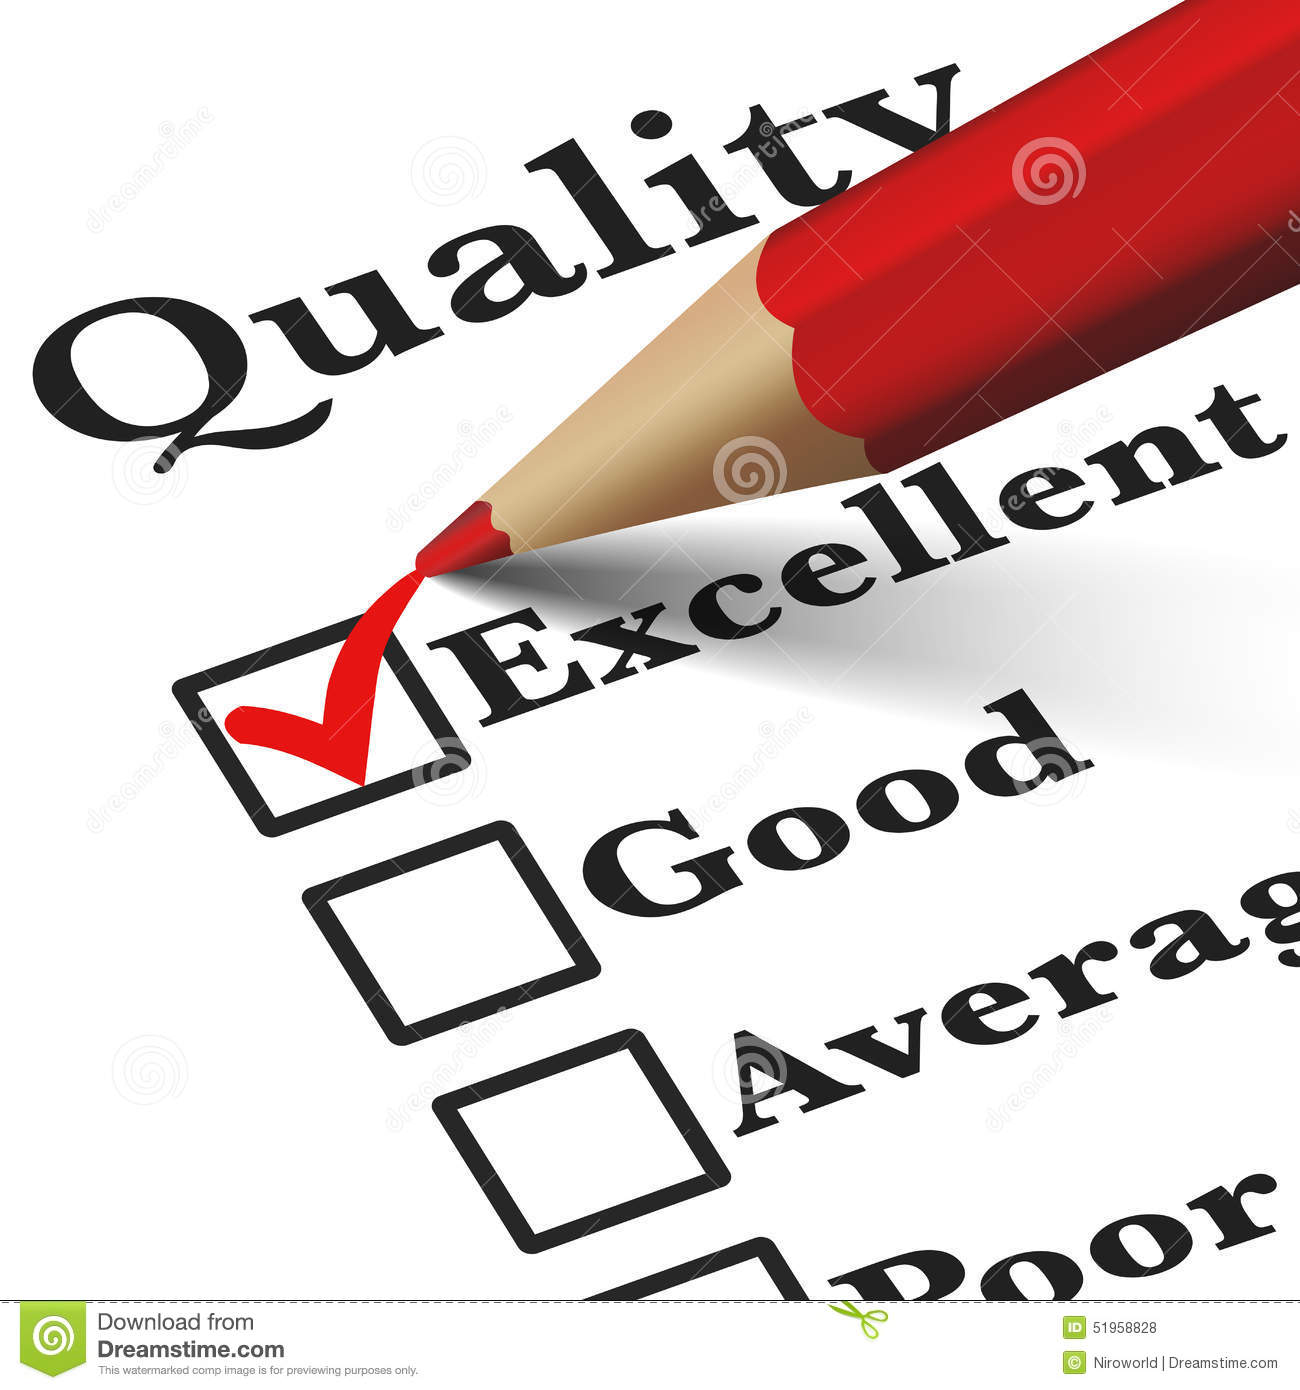 Clipart Quality Clipart